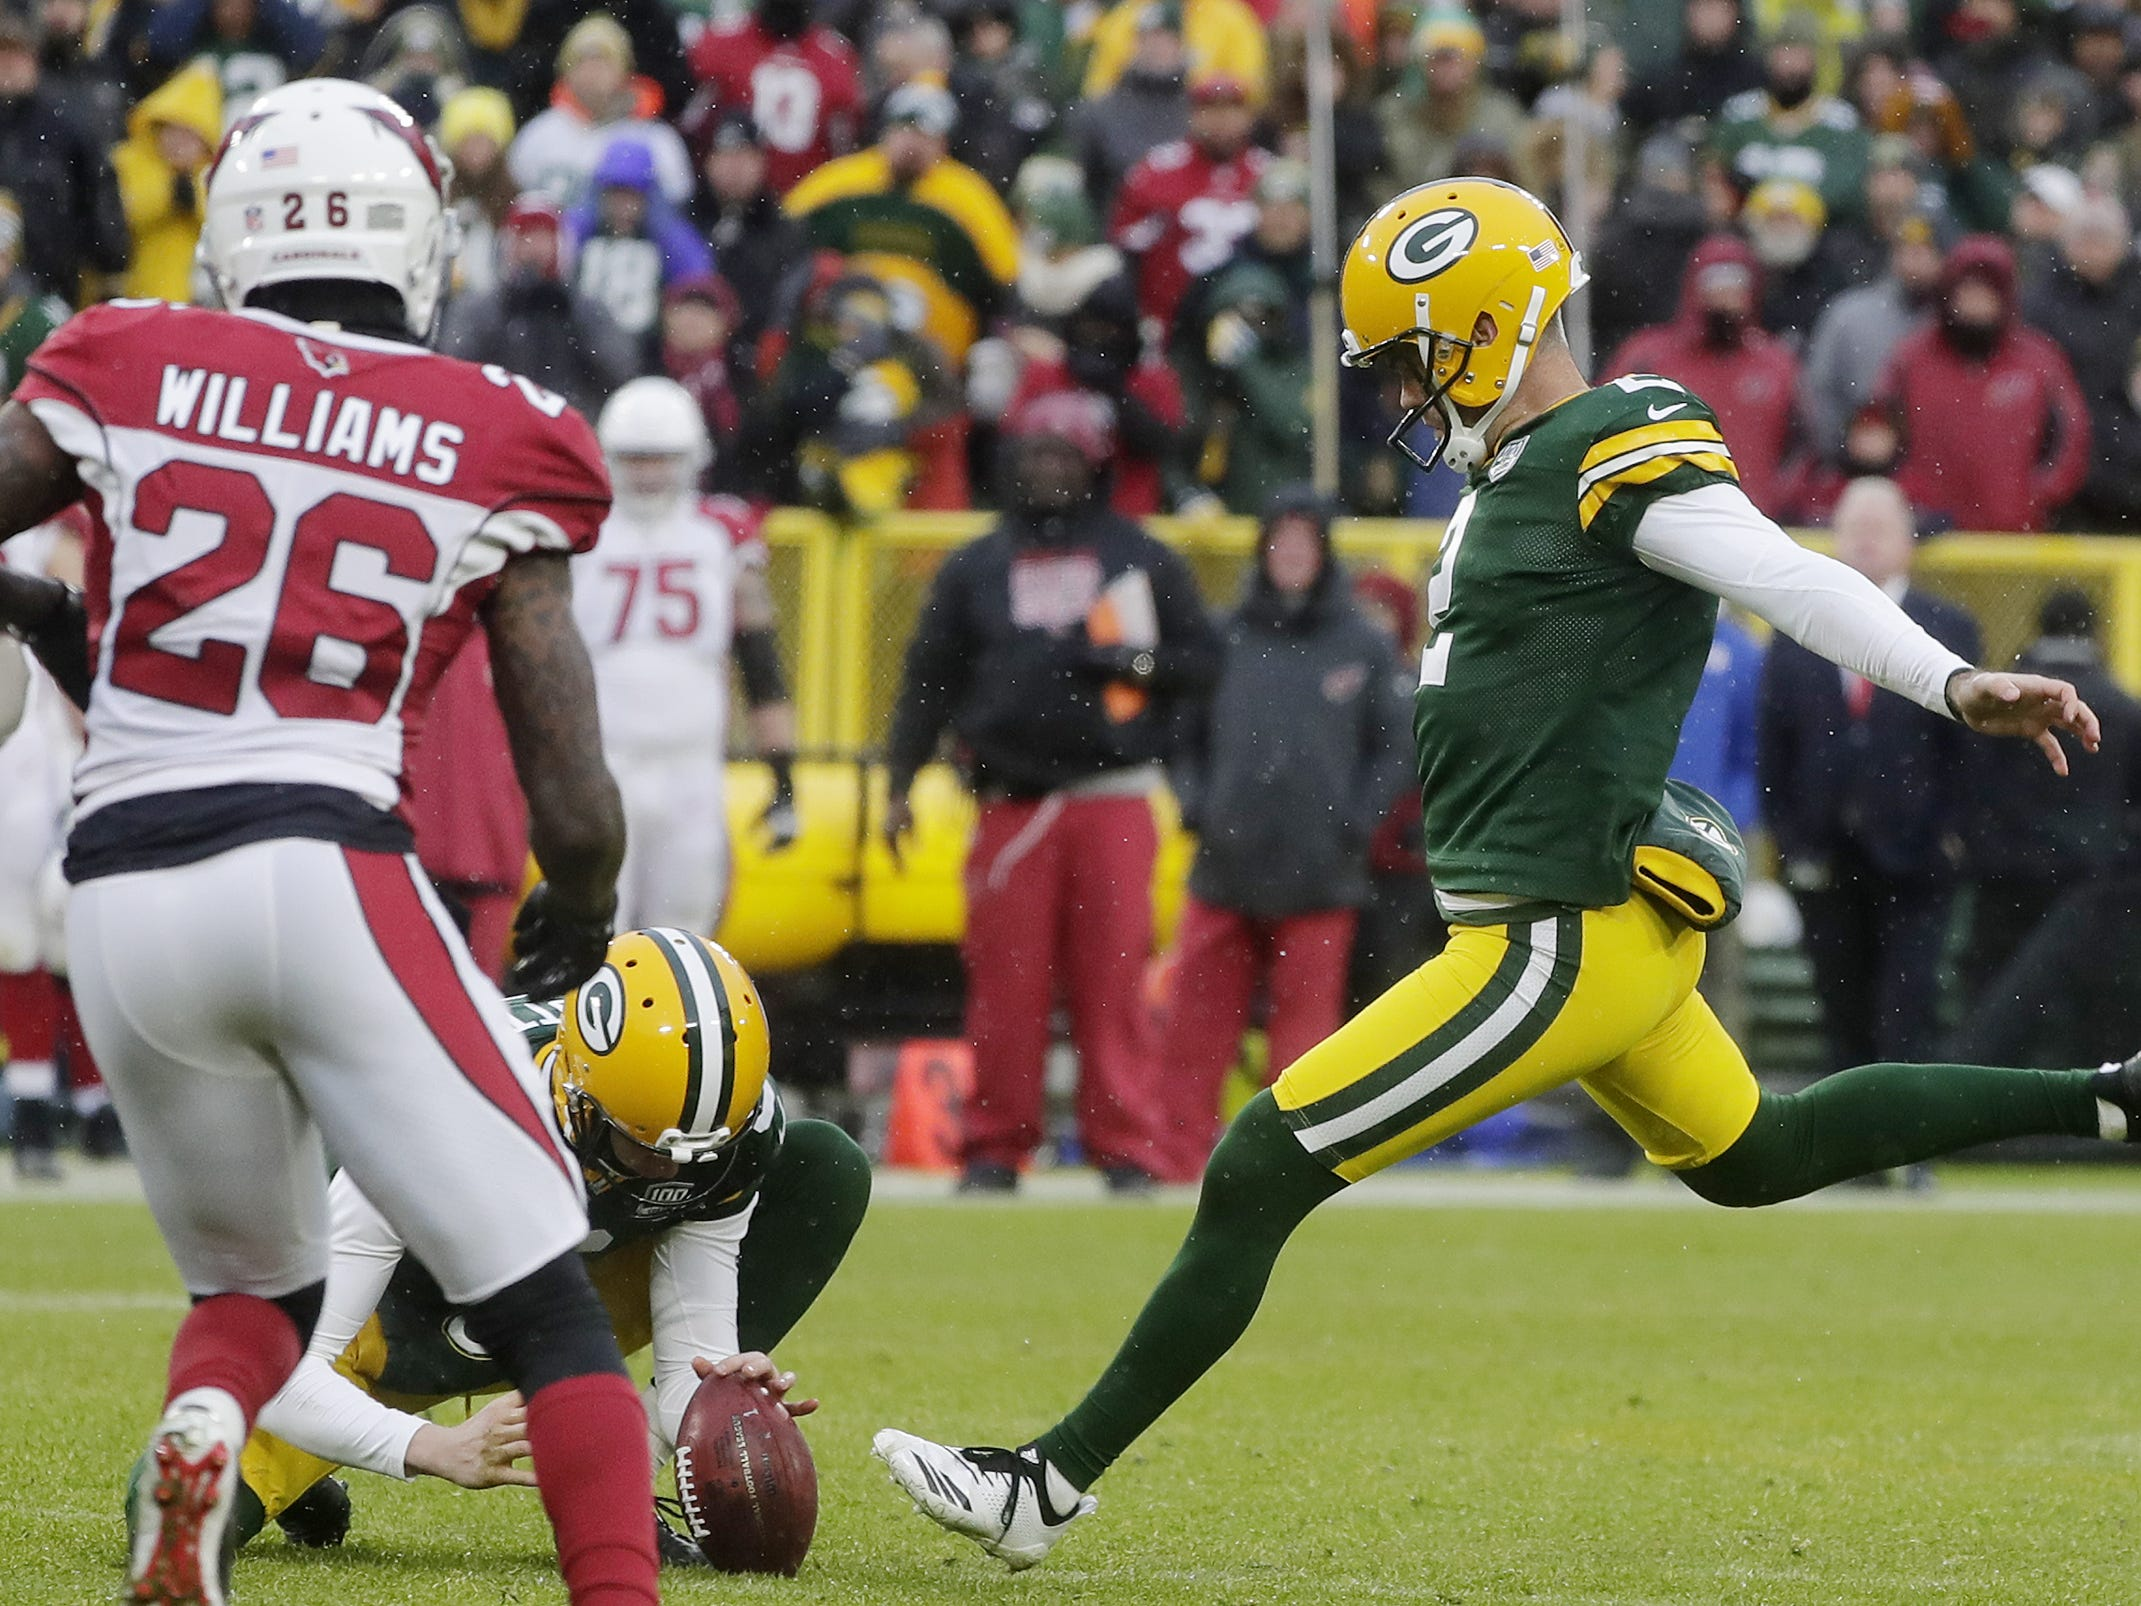 Green Bay Packers kicker Mason Crosby (2) misses a field goal as time expires in the fourth quarter against the Arizona Cardinals at Lambeau Field on Sunday, December 2, 2018 in Green Bay, Wis.